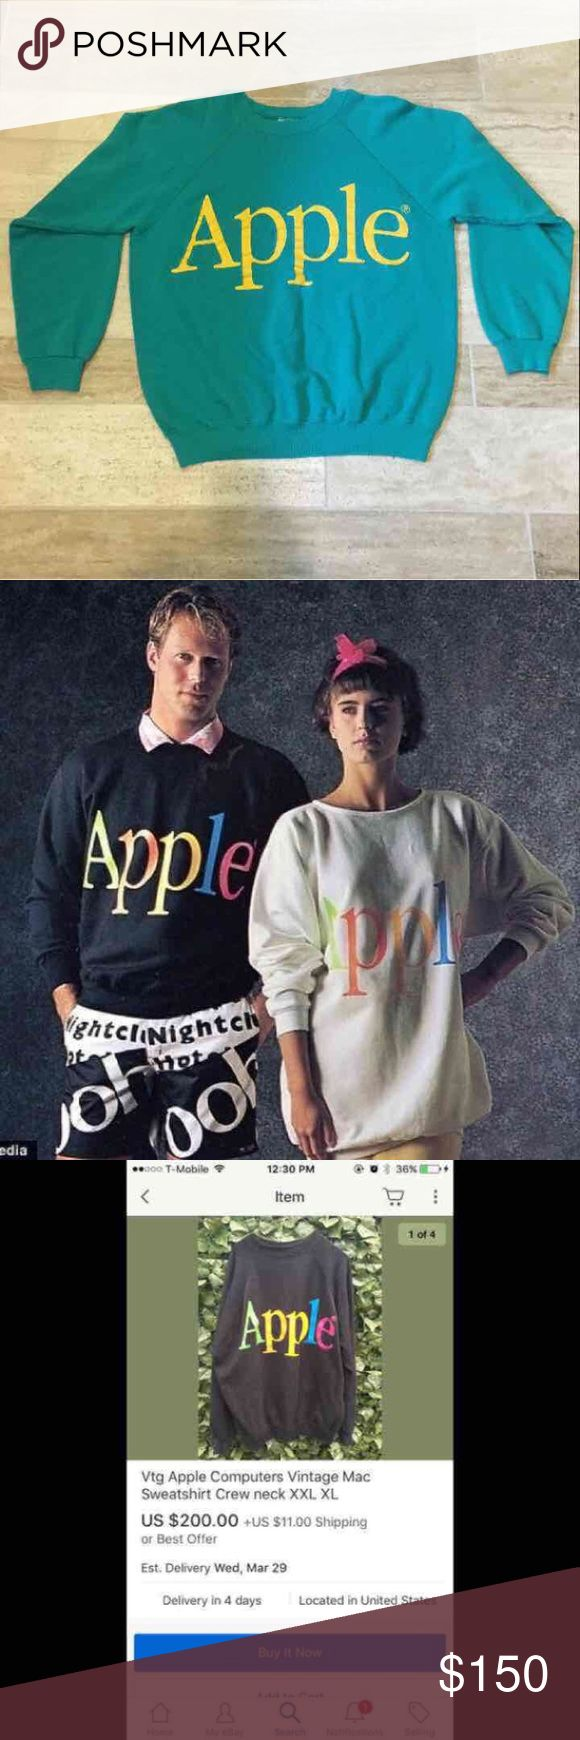 Vintage Apple / Mac Sweatshirt - Extremely Rare I have 2 of these! Other is pink and white. Currently listed on my page.   Very rare and unique Mac/Apple Computer sweatshirt.  Did LOTS of Google-ing and could not find any other pics with sweatshirt in same colors or font. Pics I posted were as close as I got.    My nephew who is a Mac/Apple freak talked with some bigwigs at Apple who confirmed its at least 30+ years old.  I'll ship same day!   80's 90's  Nike Adidas Pink PINK Tops…